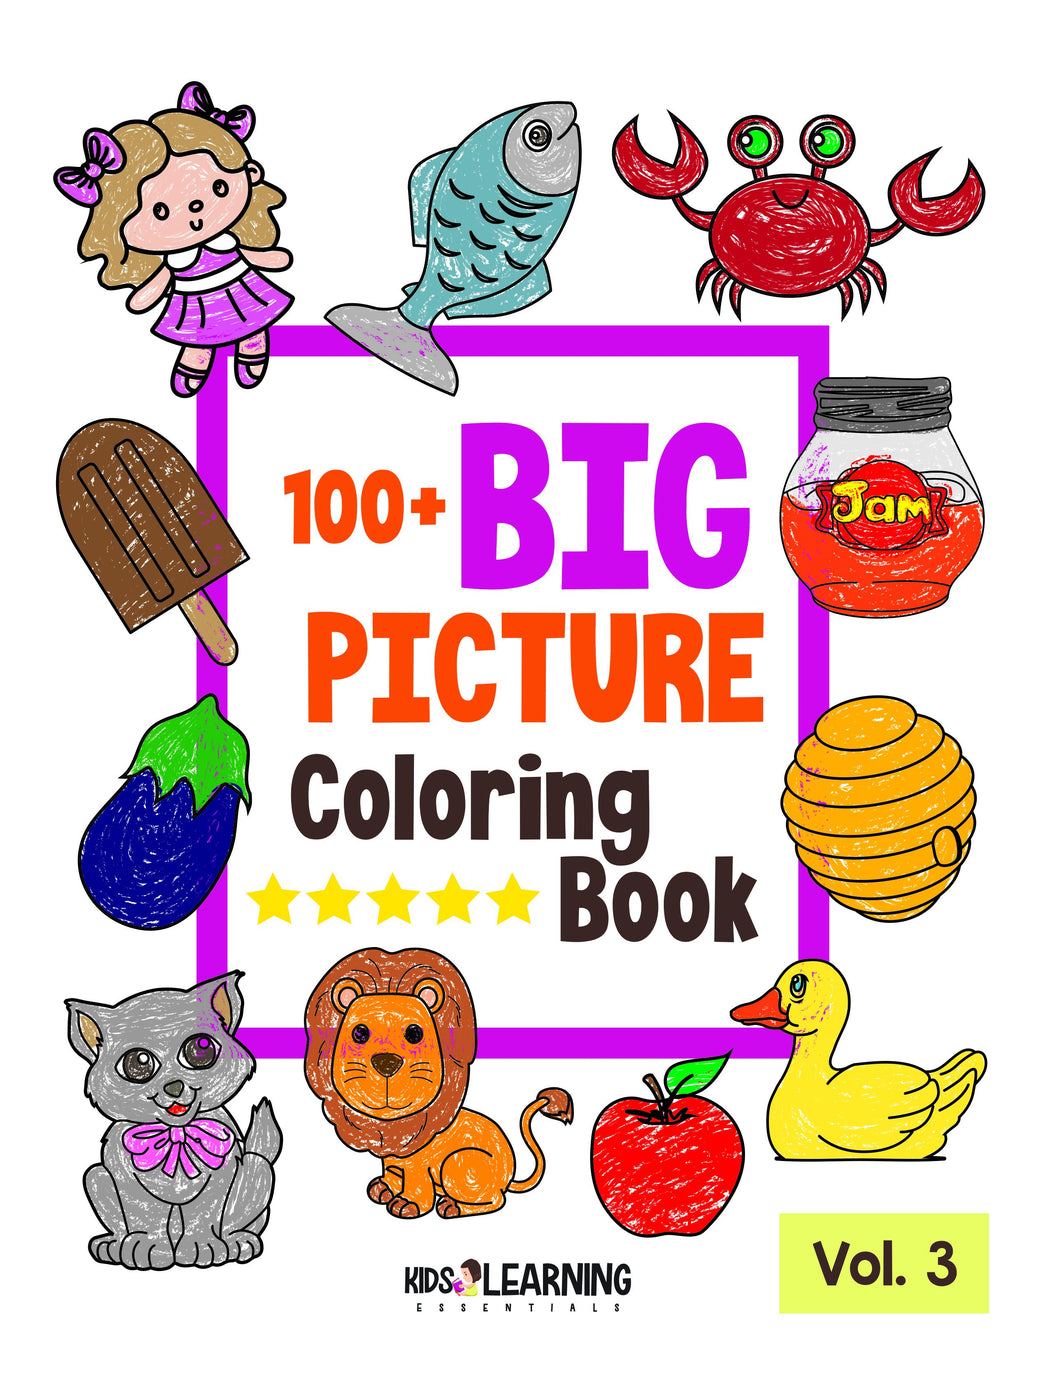 100+ Big Picture Coloring Book Volume 3 Digital